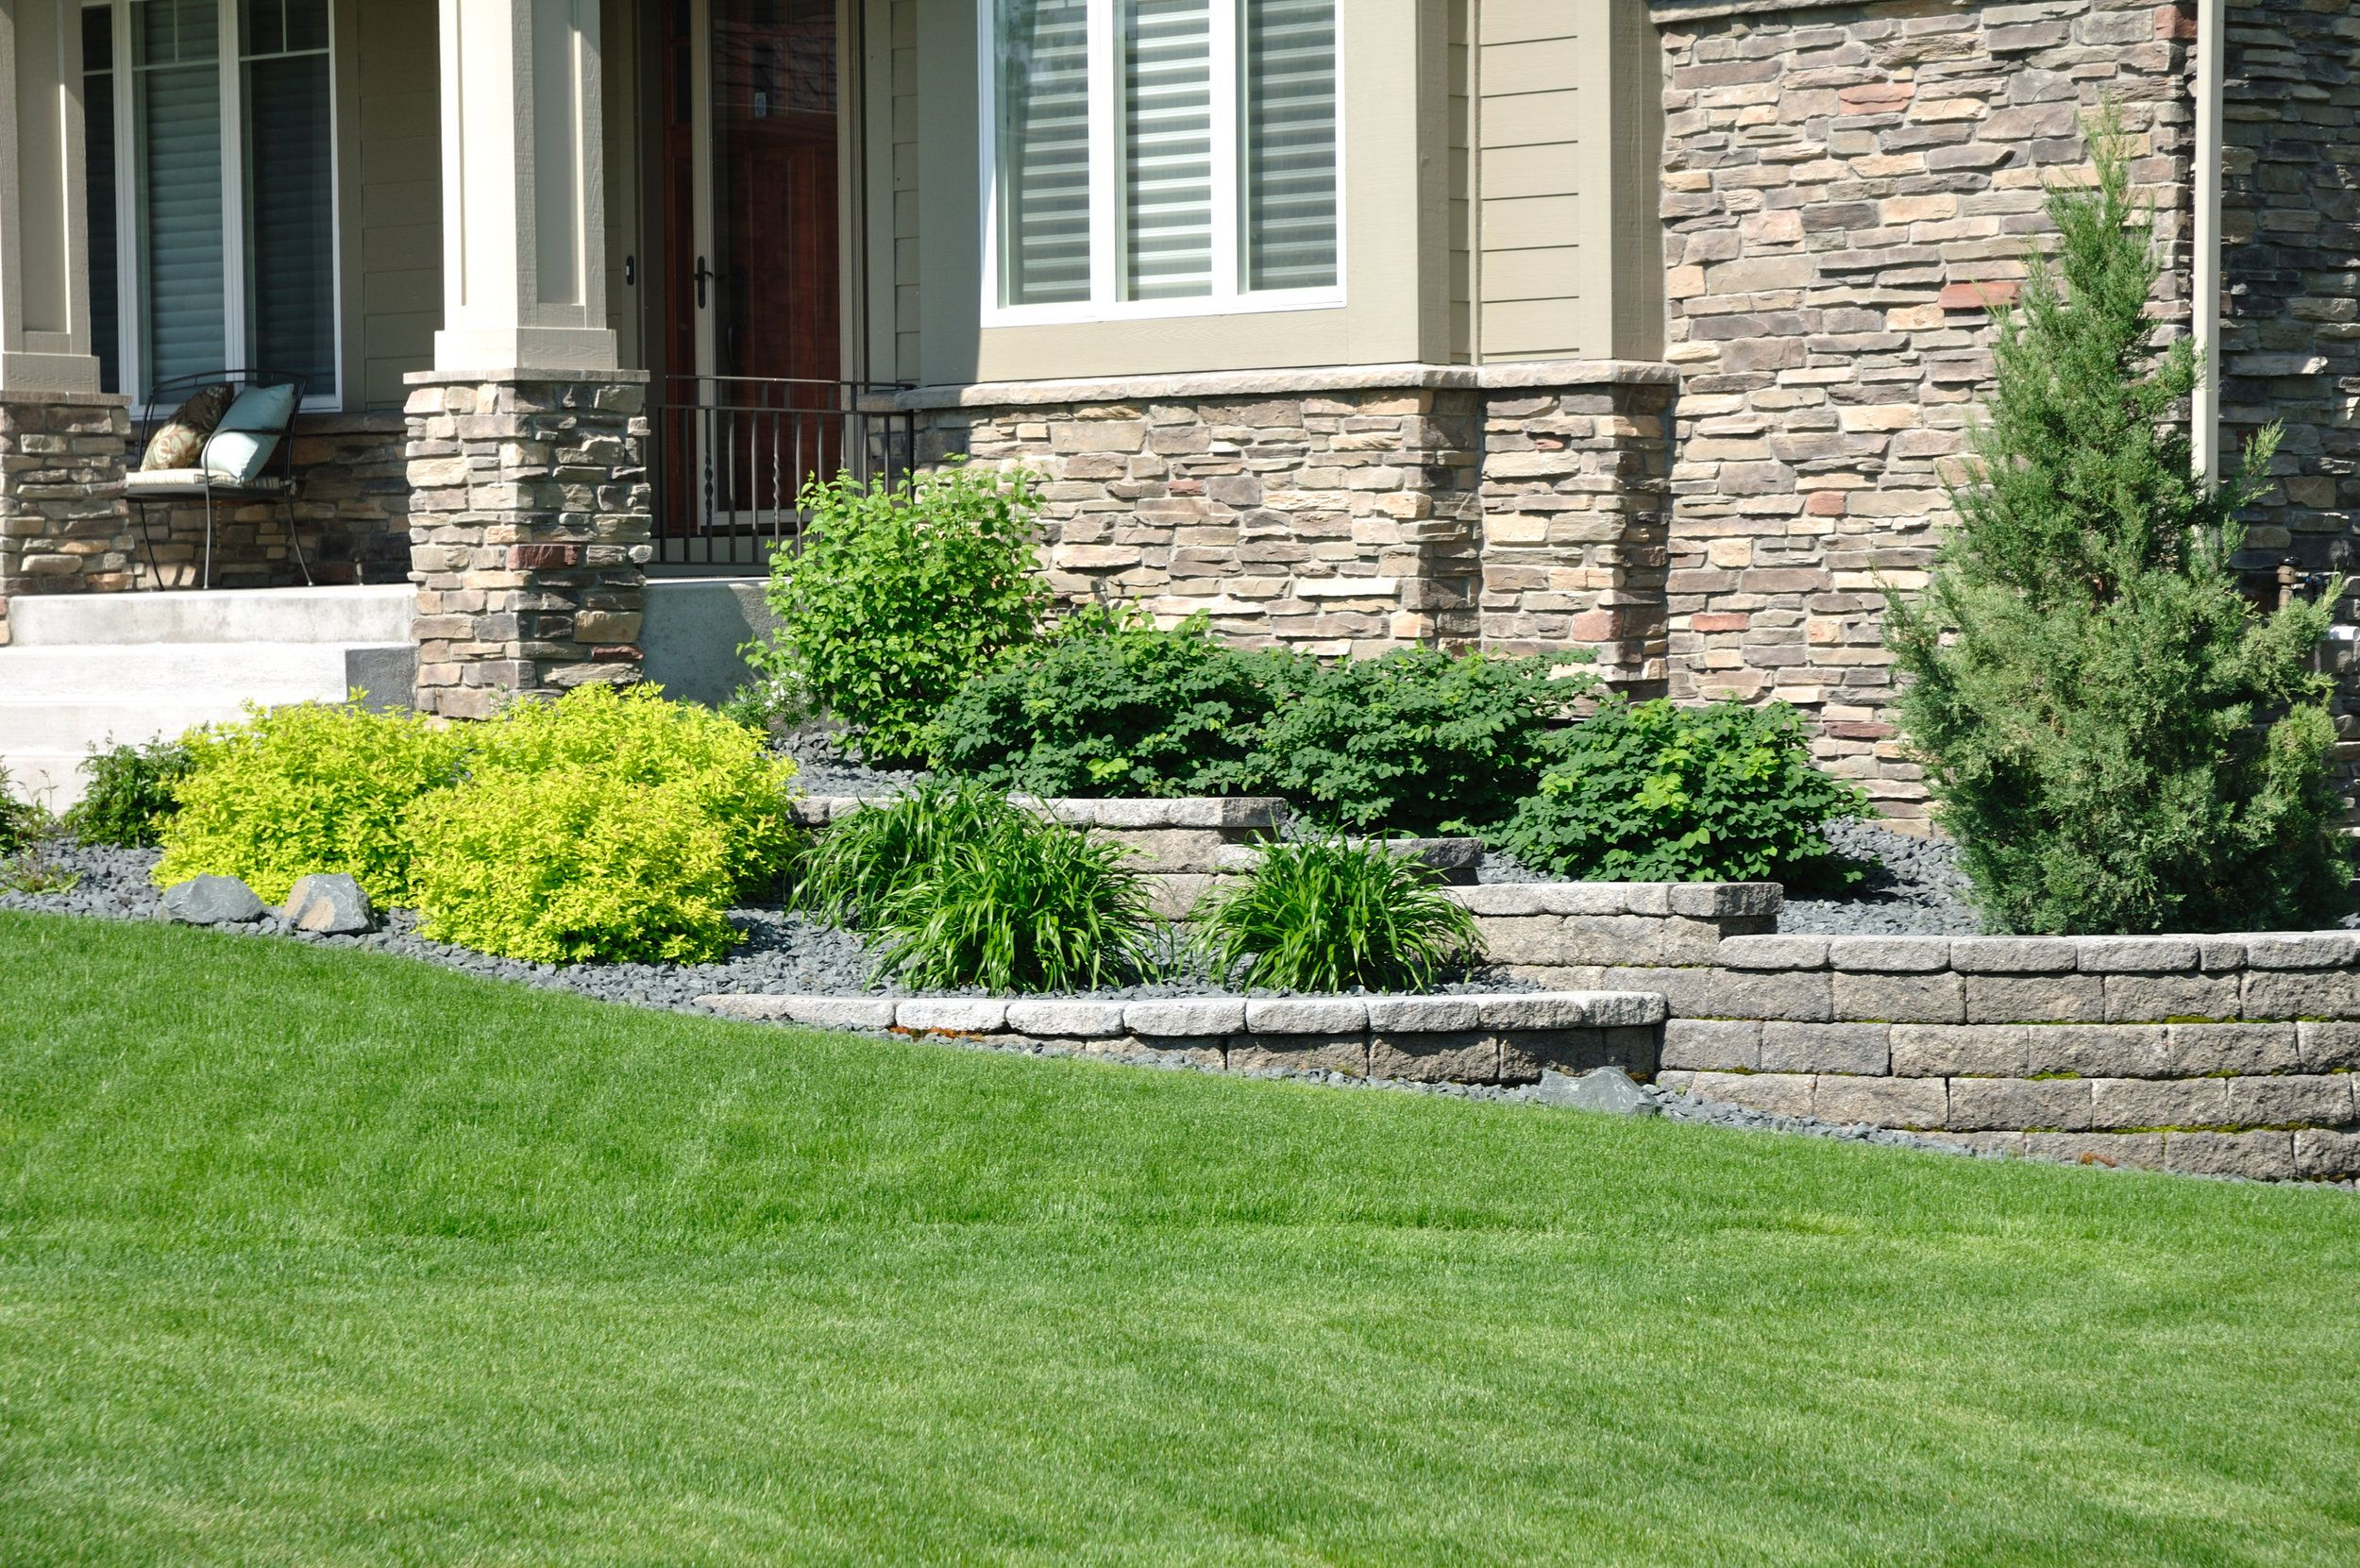 Multi Level Stone Wall With Landscaping